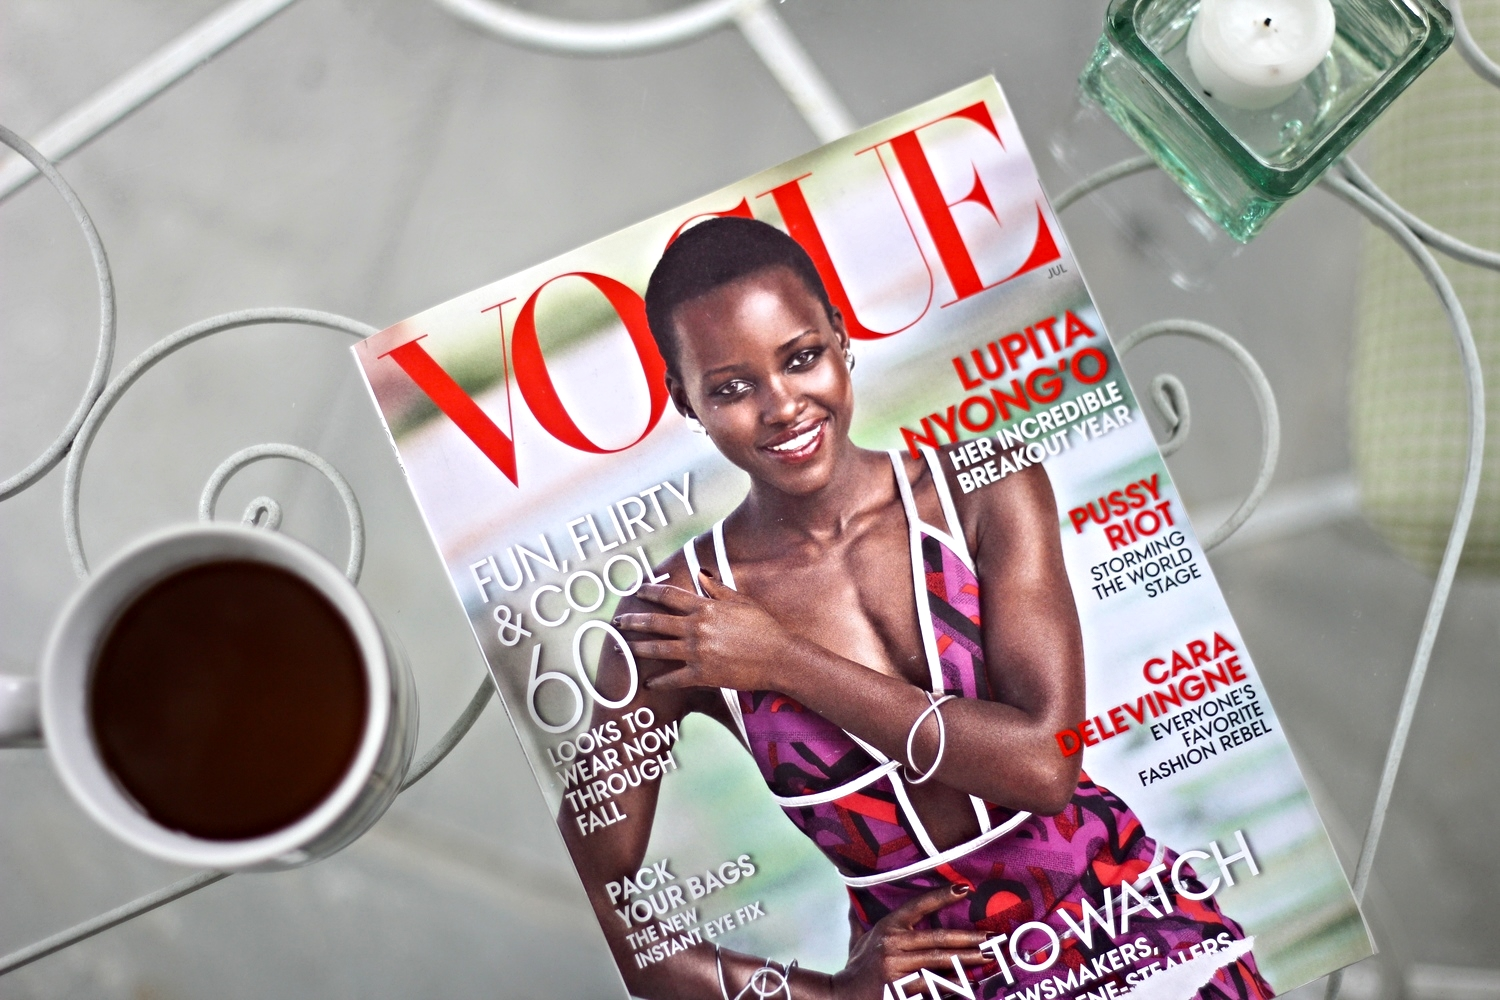 {Catching up on my Vogue subscription after being away all summer}